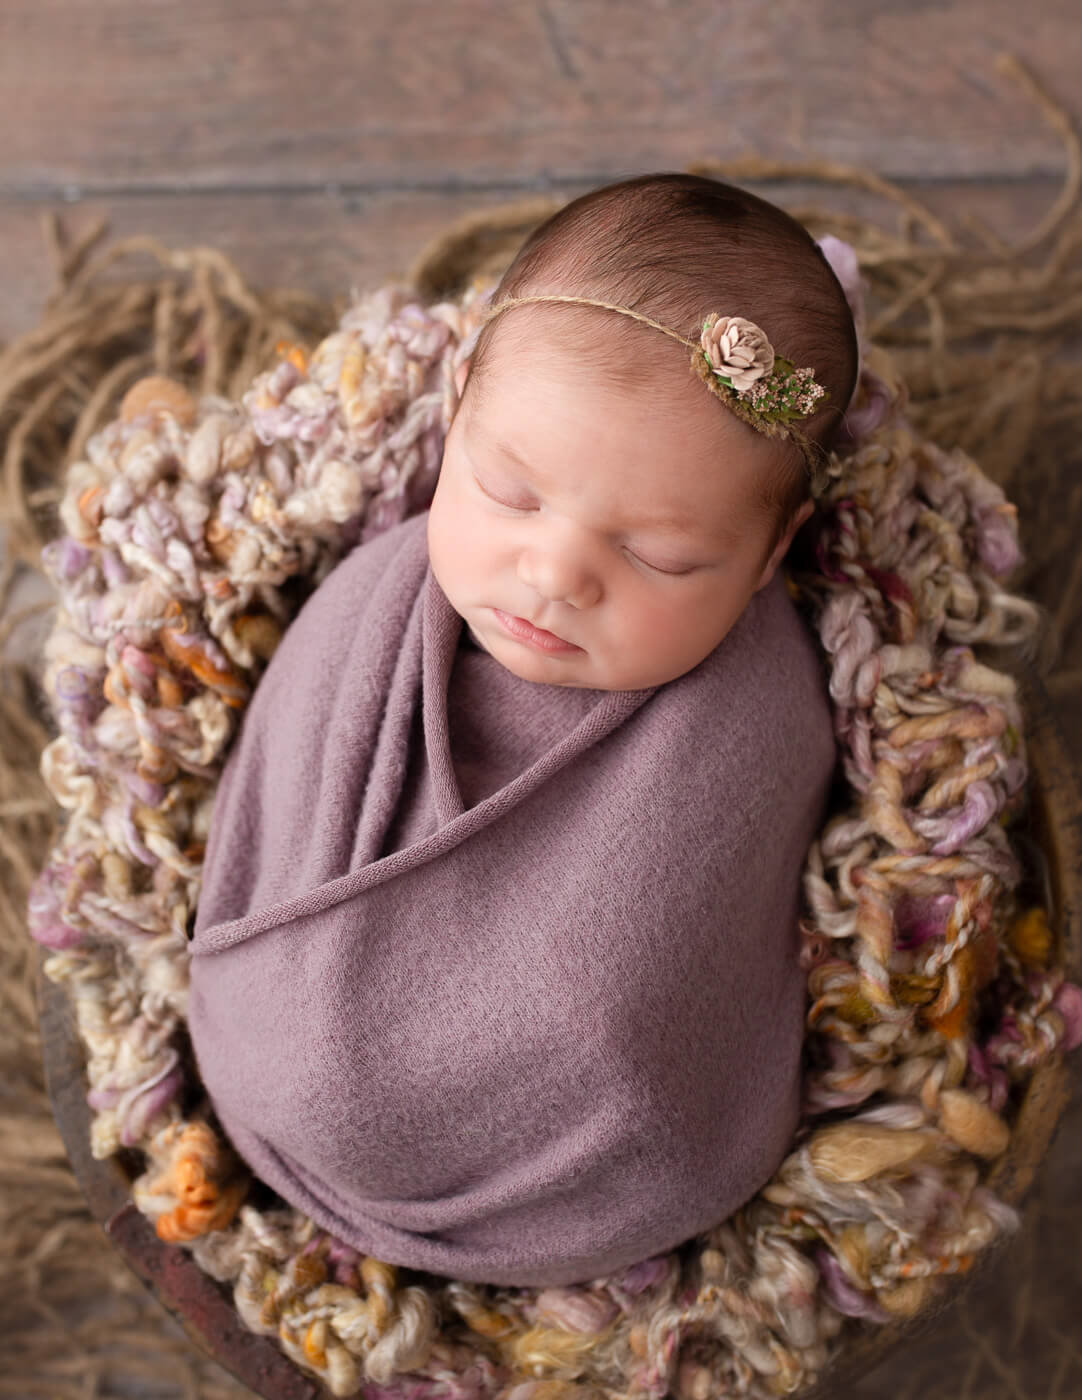 Cute newborn girl wrapped in a wooden bowl.